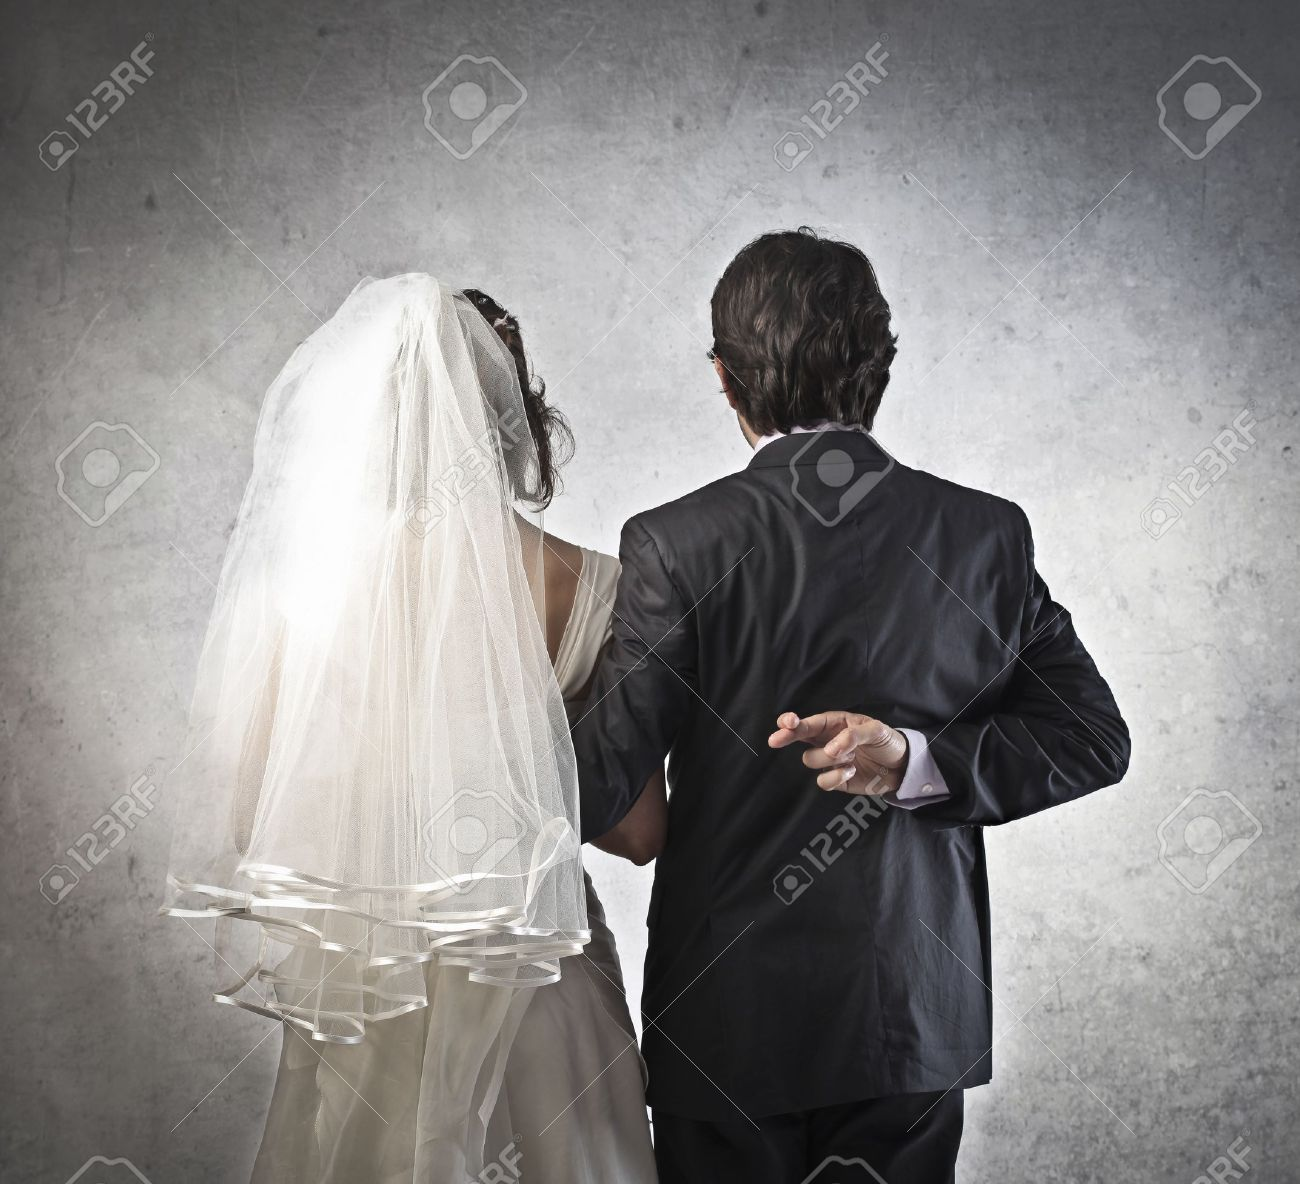 Married couple with husband crossing his fingers behind his back - 13361072